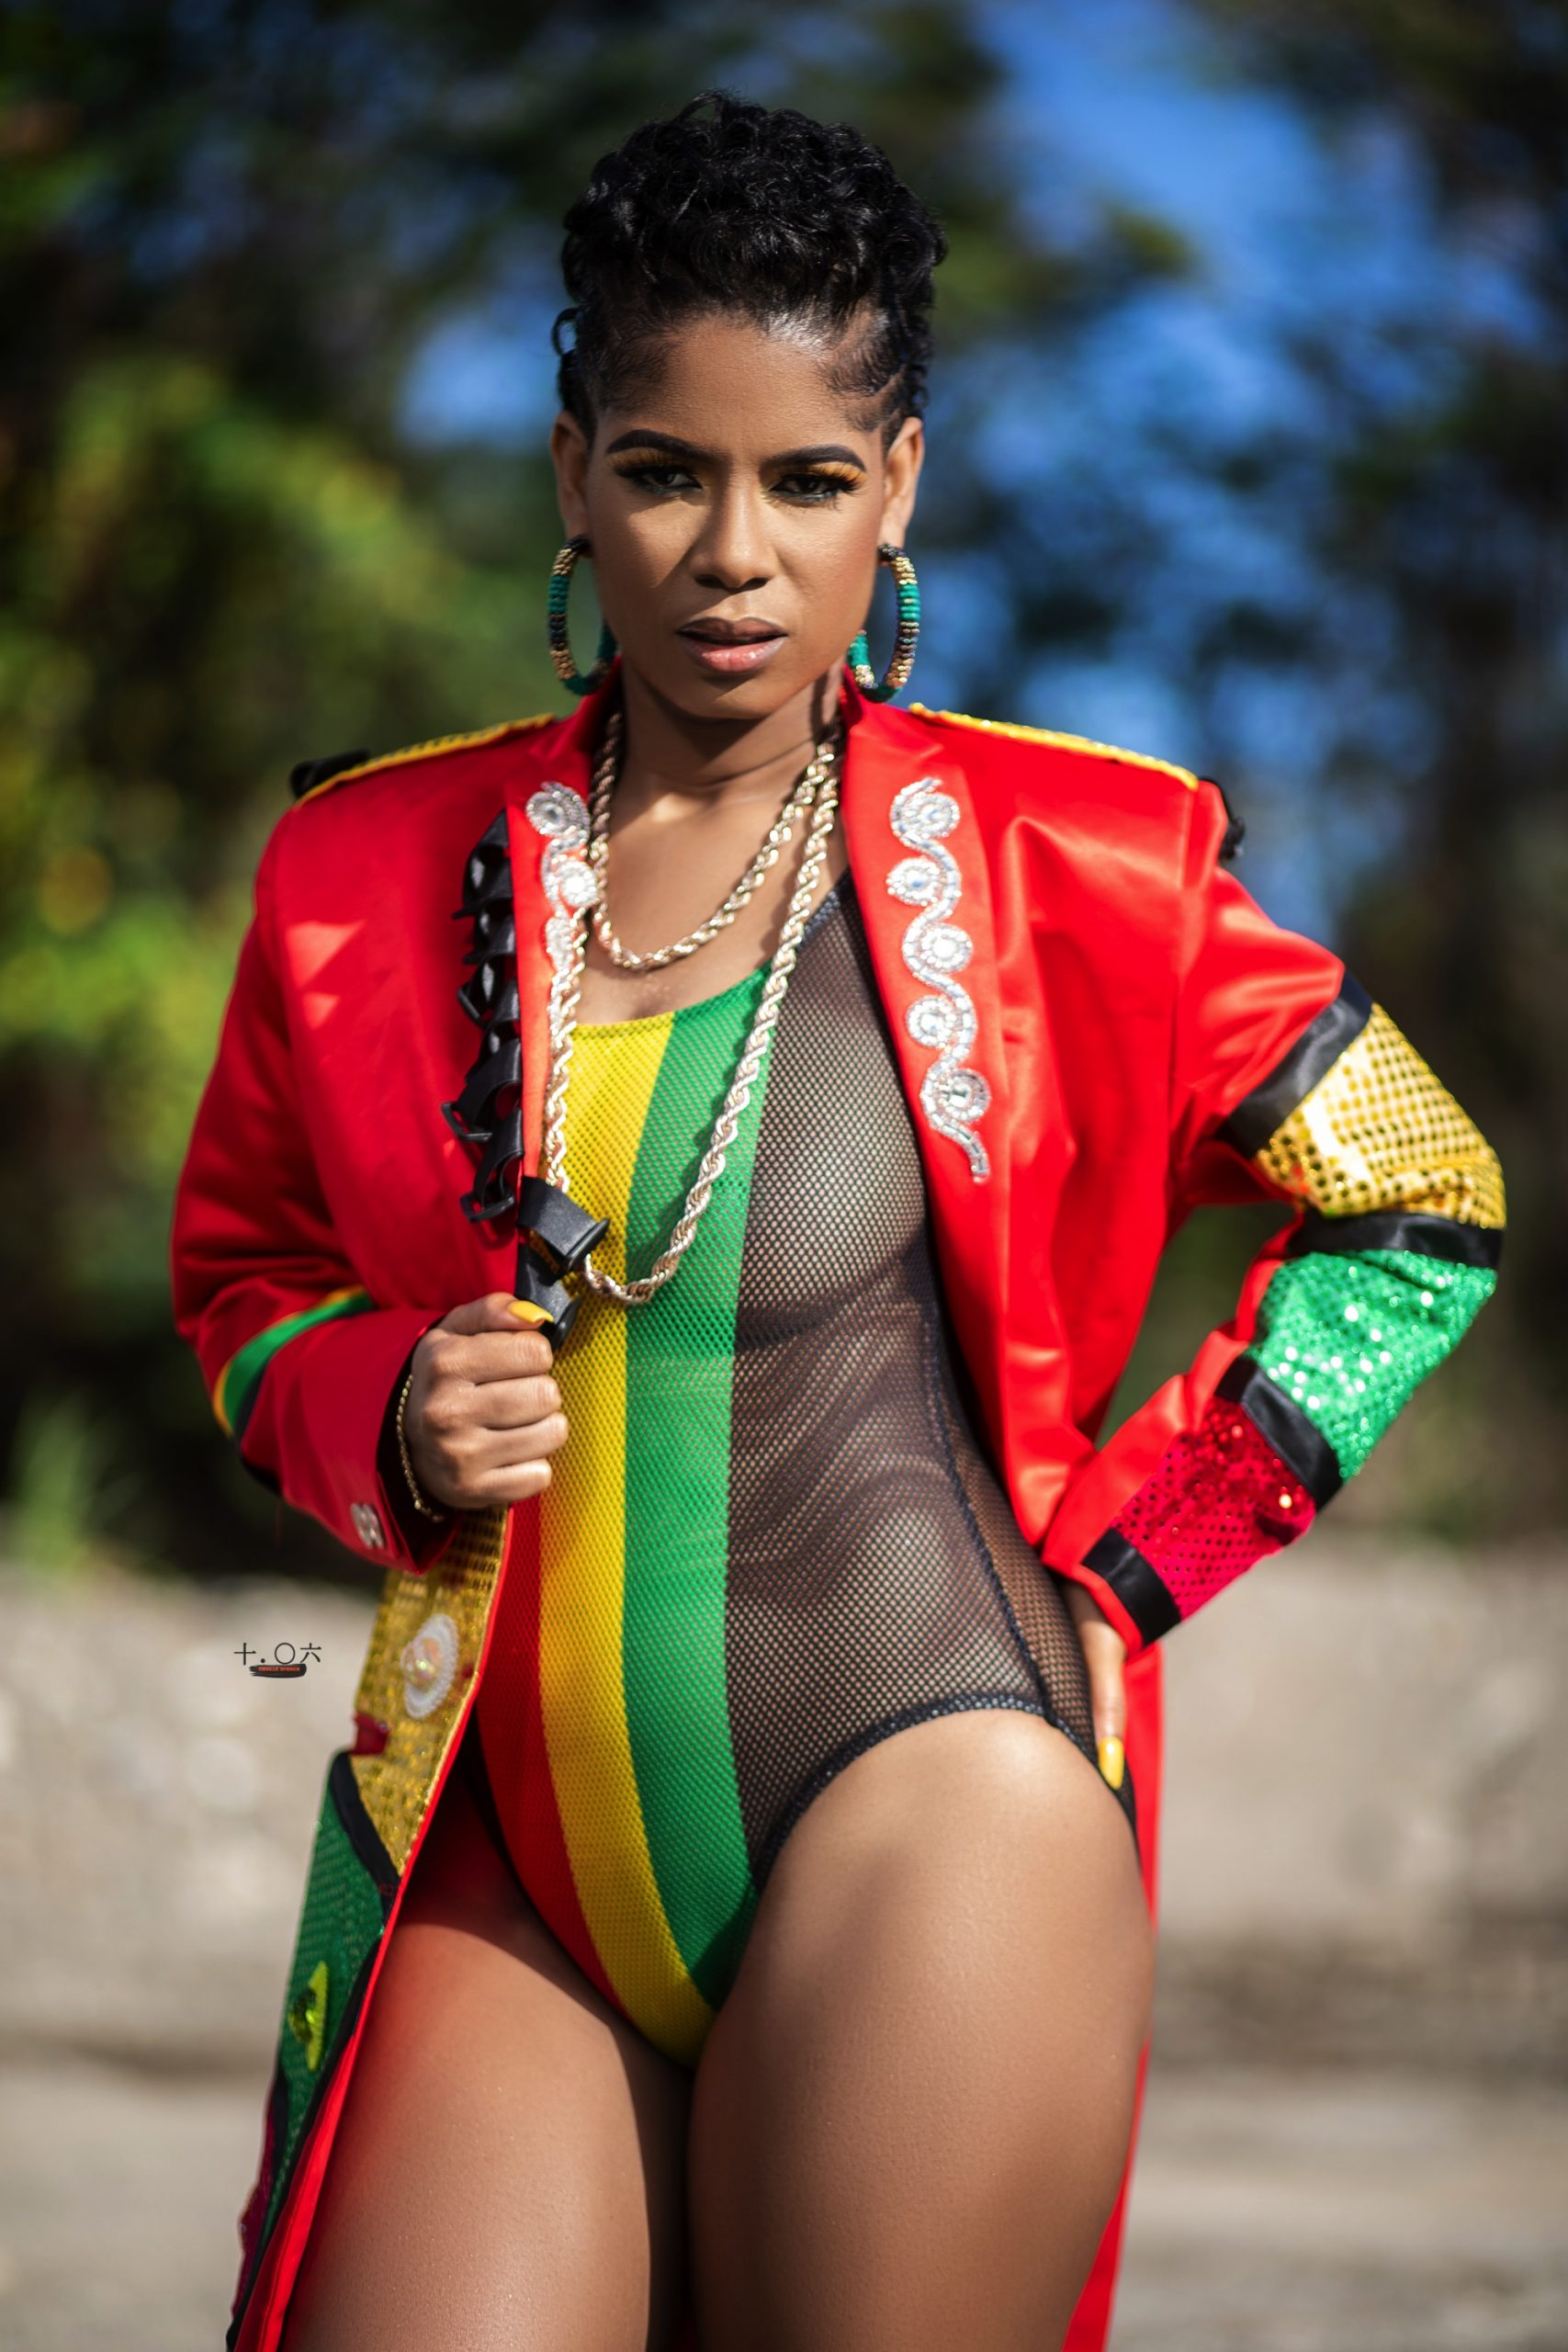 Are You Aware of The Best Reggae and Dancehall? Here's a List Of Them